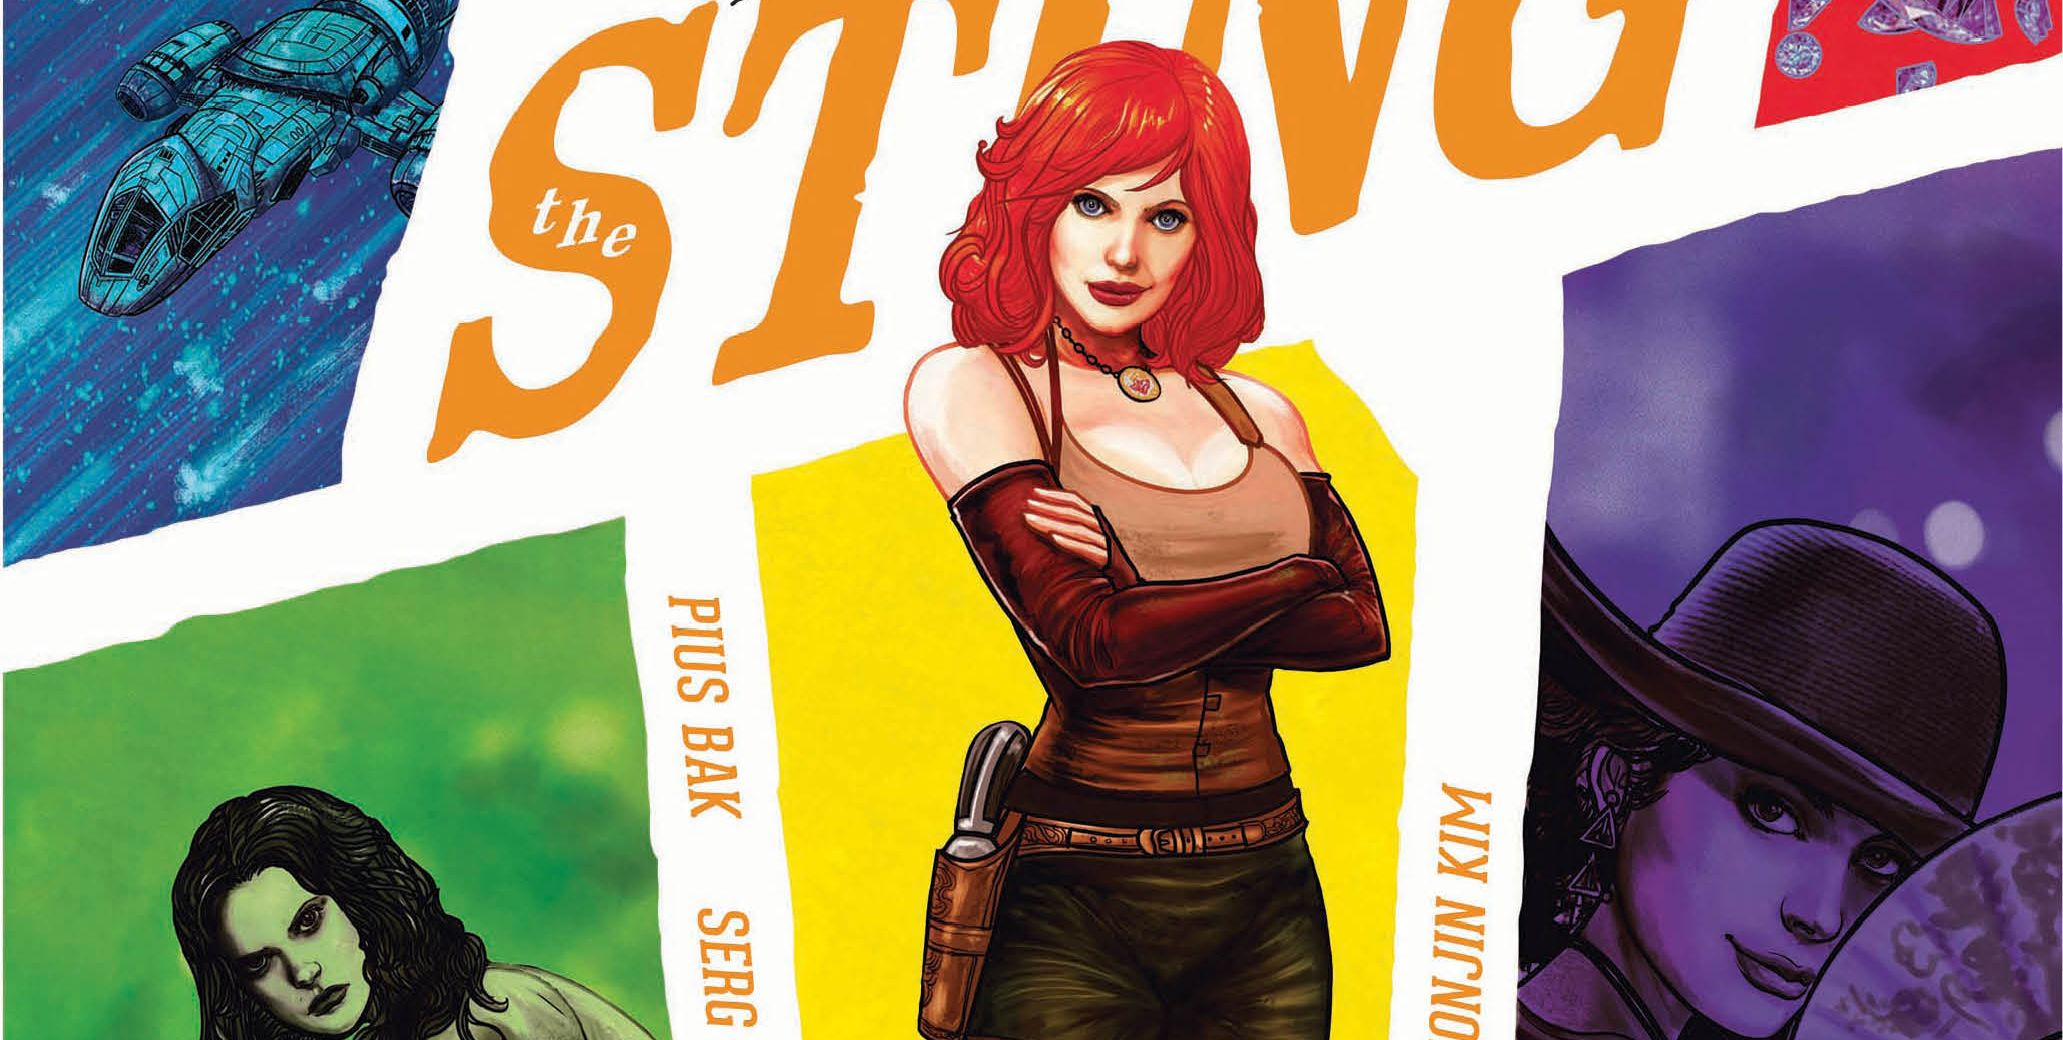 EXCLUSIVE: Firefly: The Sting OGN First Look Sees A New Heist Team Forming